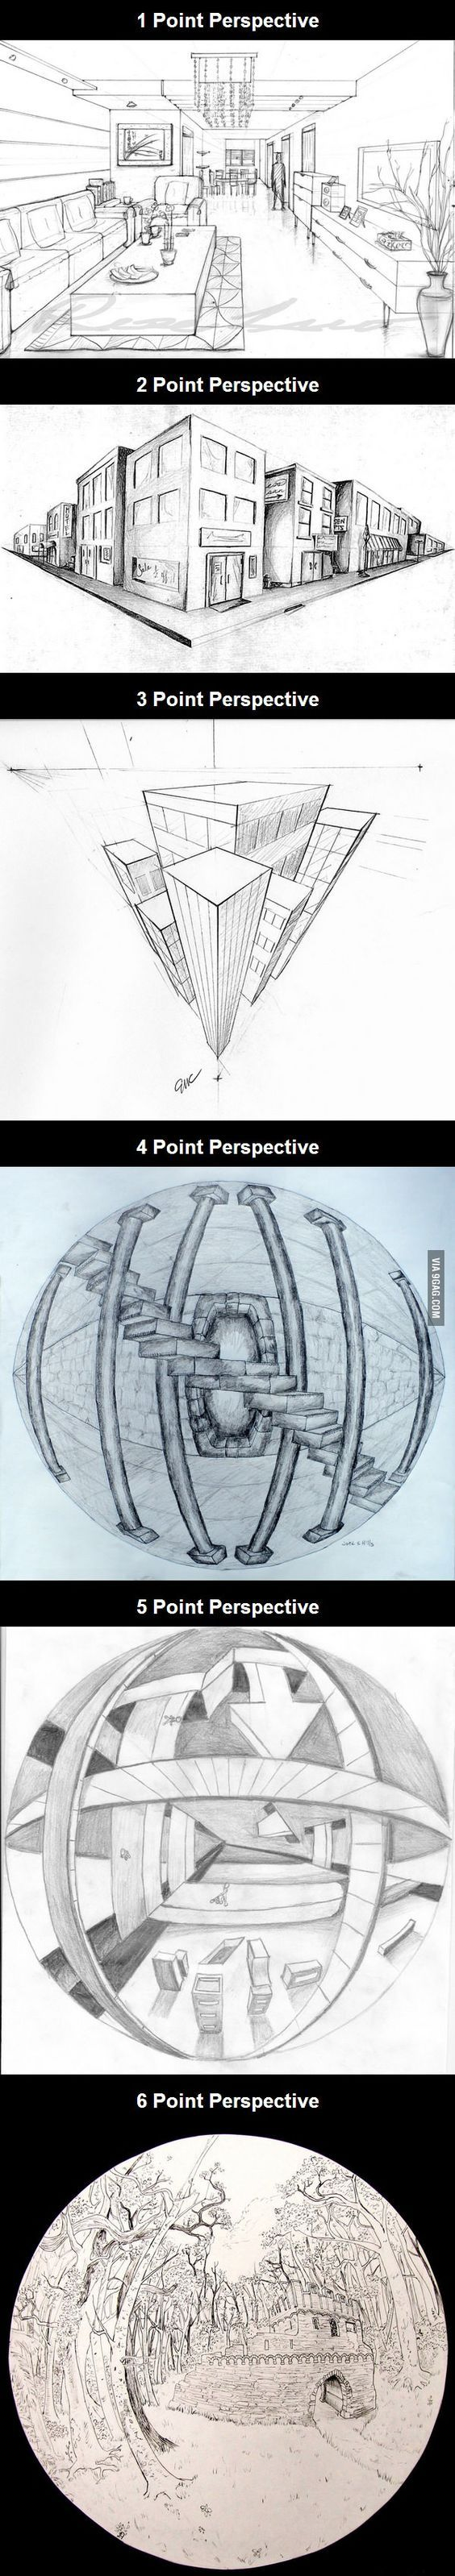 "Perspective Drawing - The sixth illustration is actually missing a vanishing point, making it a five-point perspective drawing. The first five vanishing points are up, down, left, right, and forward. The sixth vanishing point is ""backward,"" or behind, so a complete drawing includes the opposite view as well. These drawings are usually two circles next to each other.:"